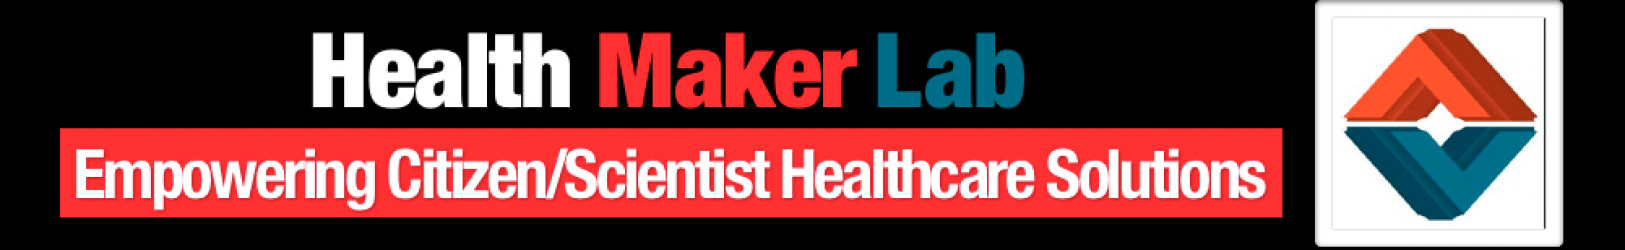 Health Maker Lab